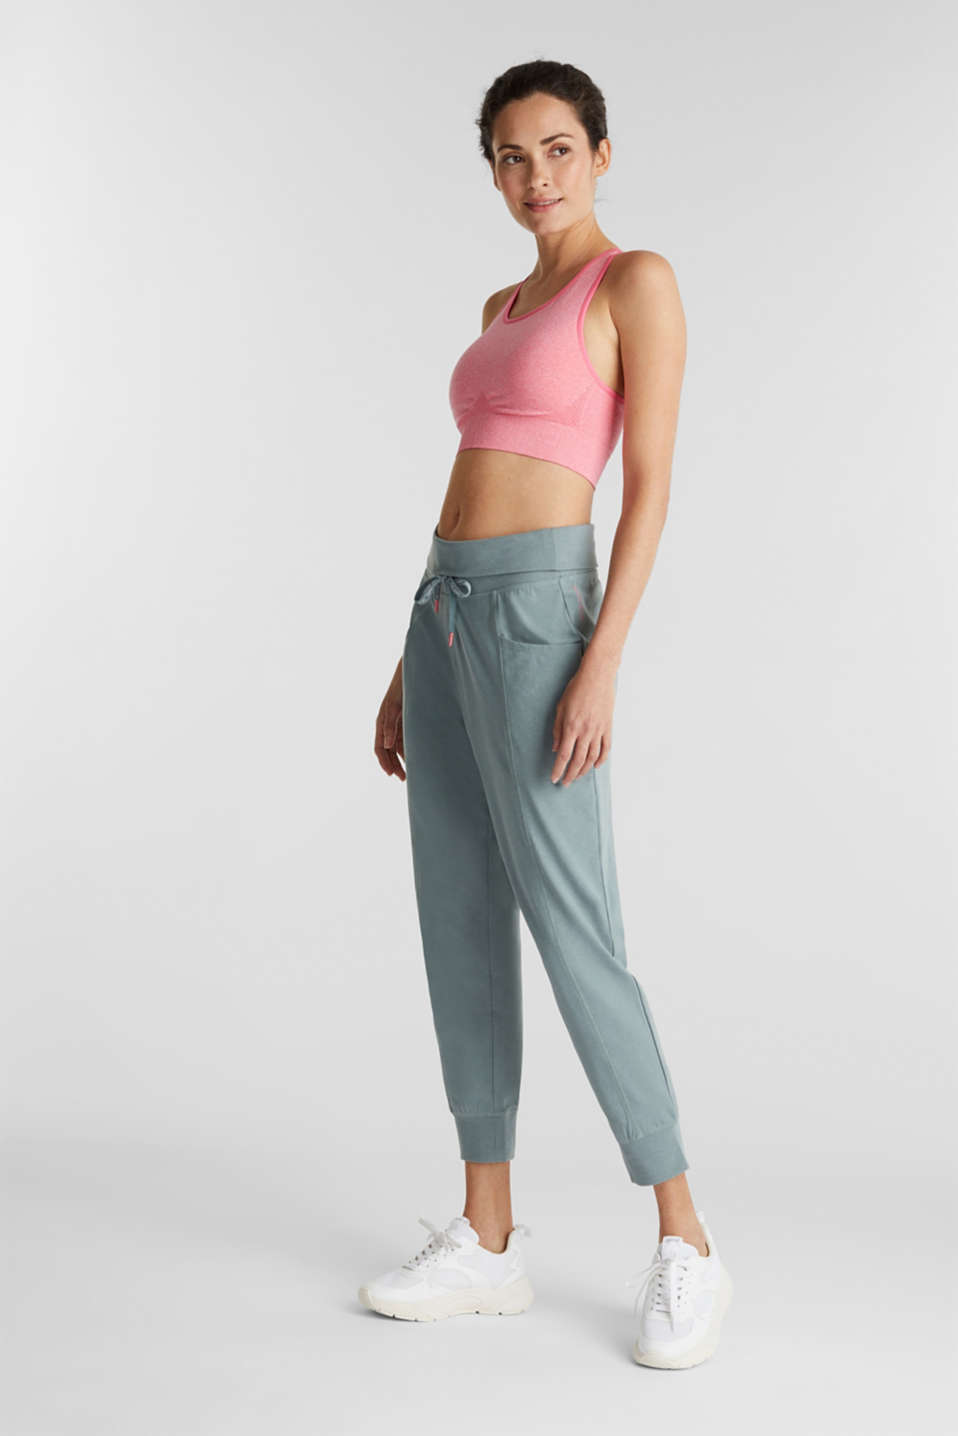 Ankle-length, jersey stretch trousers, DUSTY GREEN 2, detail image number 1